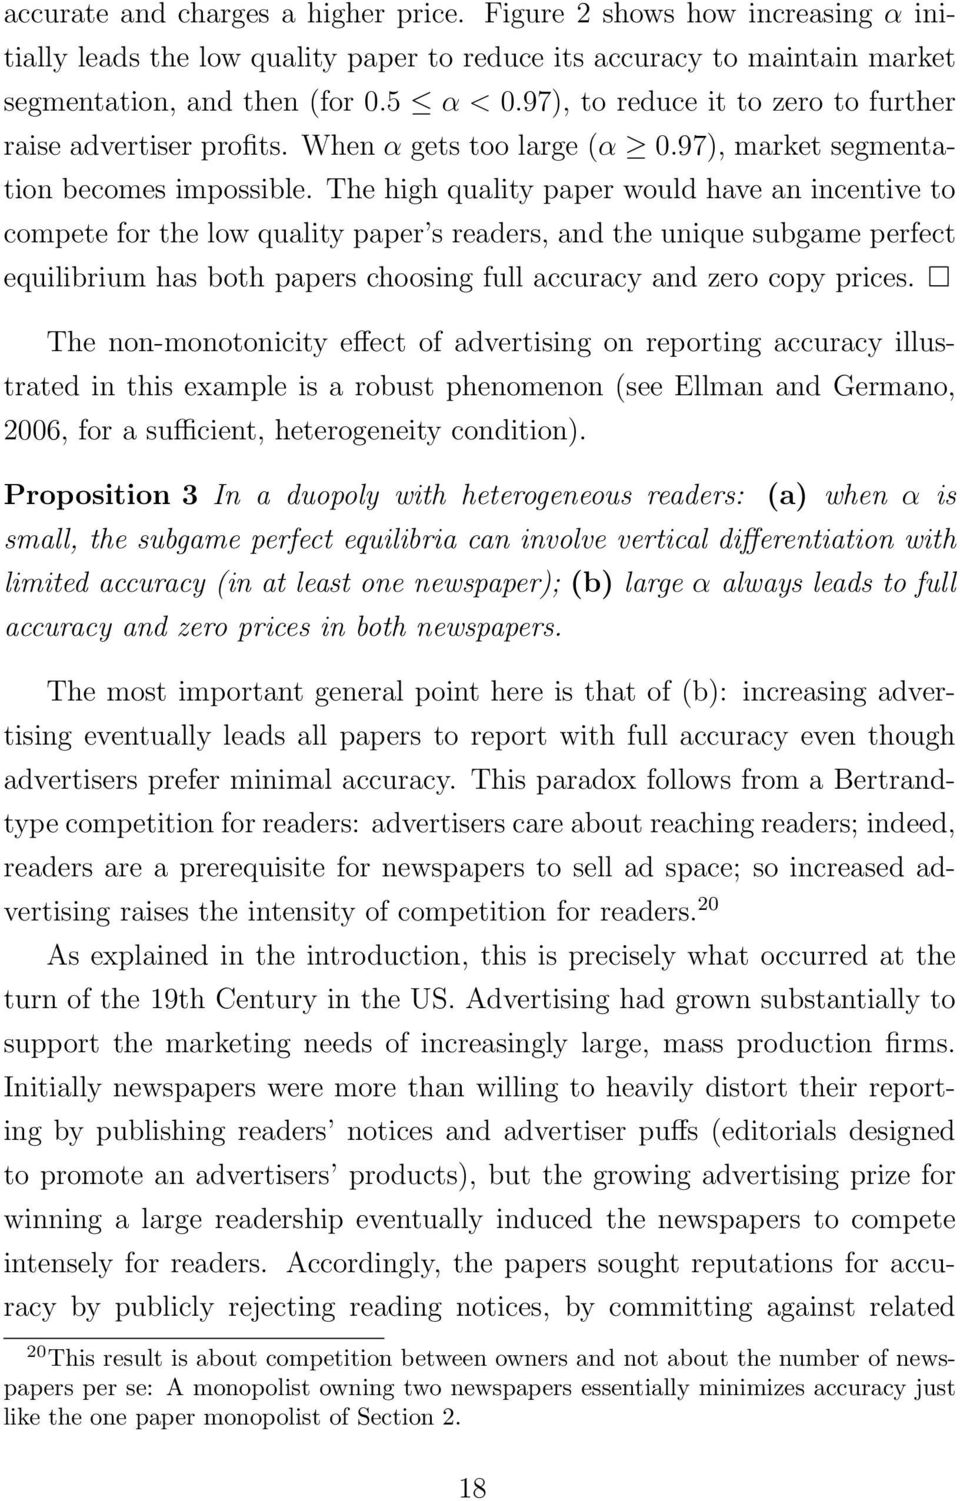 The high quality paper would have an incentive to compete for the low quality paper s readers, and the unique subgame perfect equilibrium has both papers choosing full accuracy and zero copy prices.